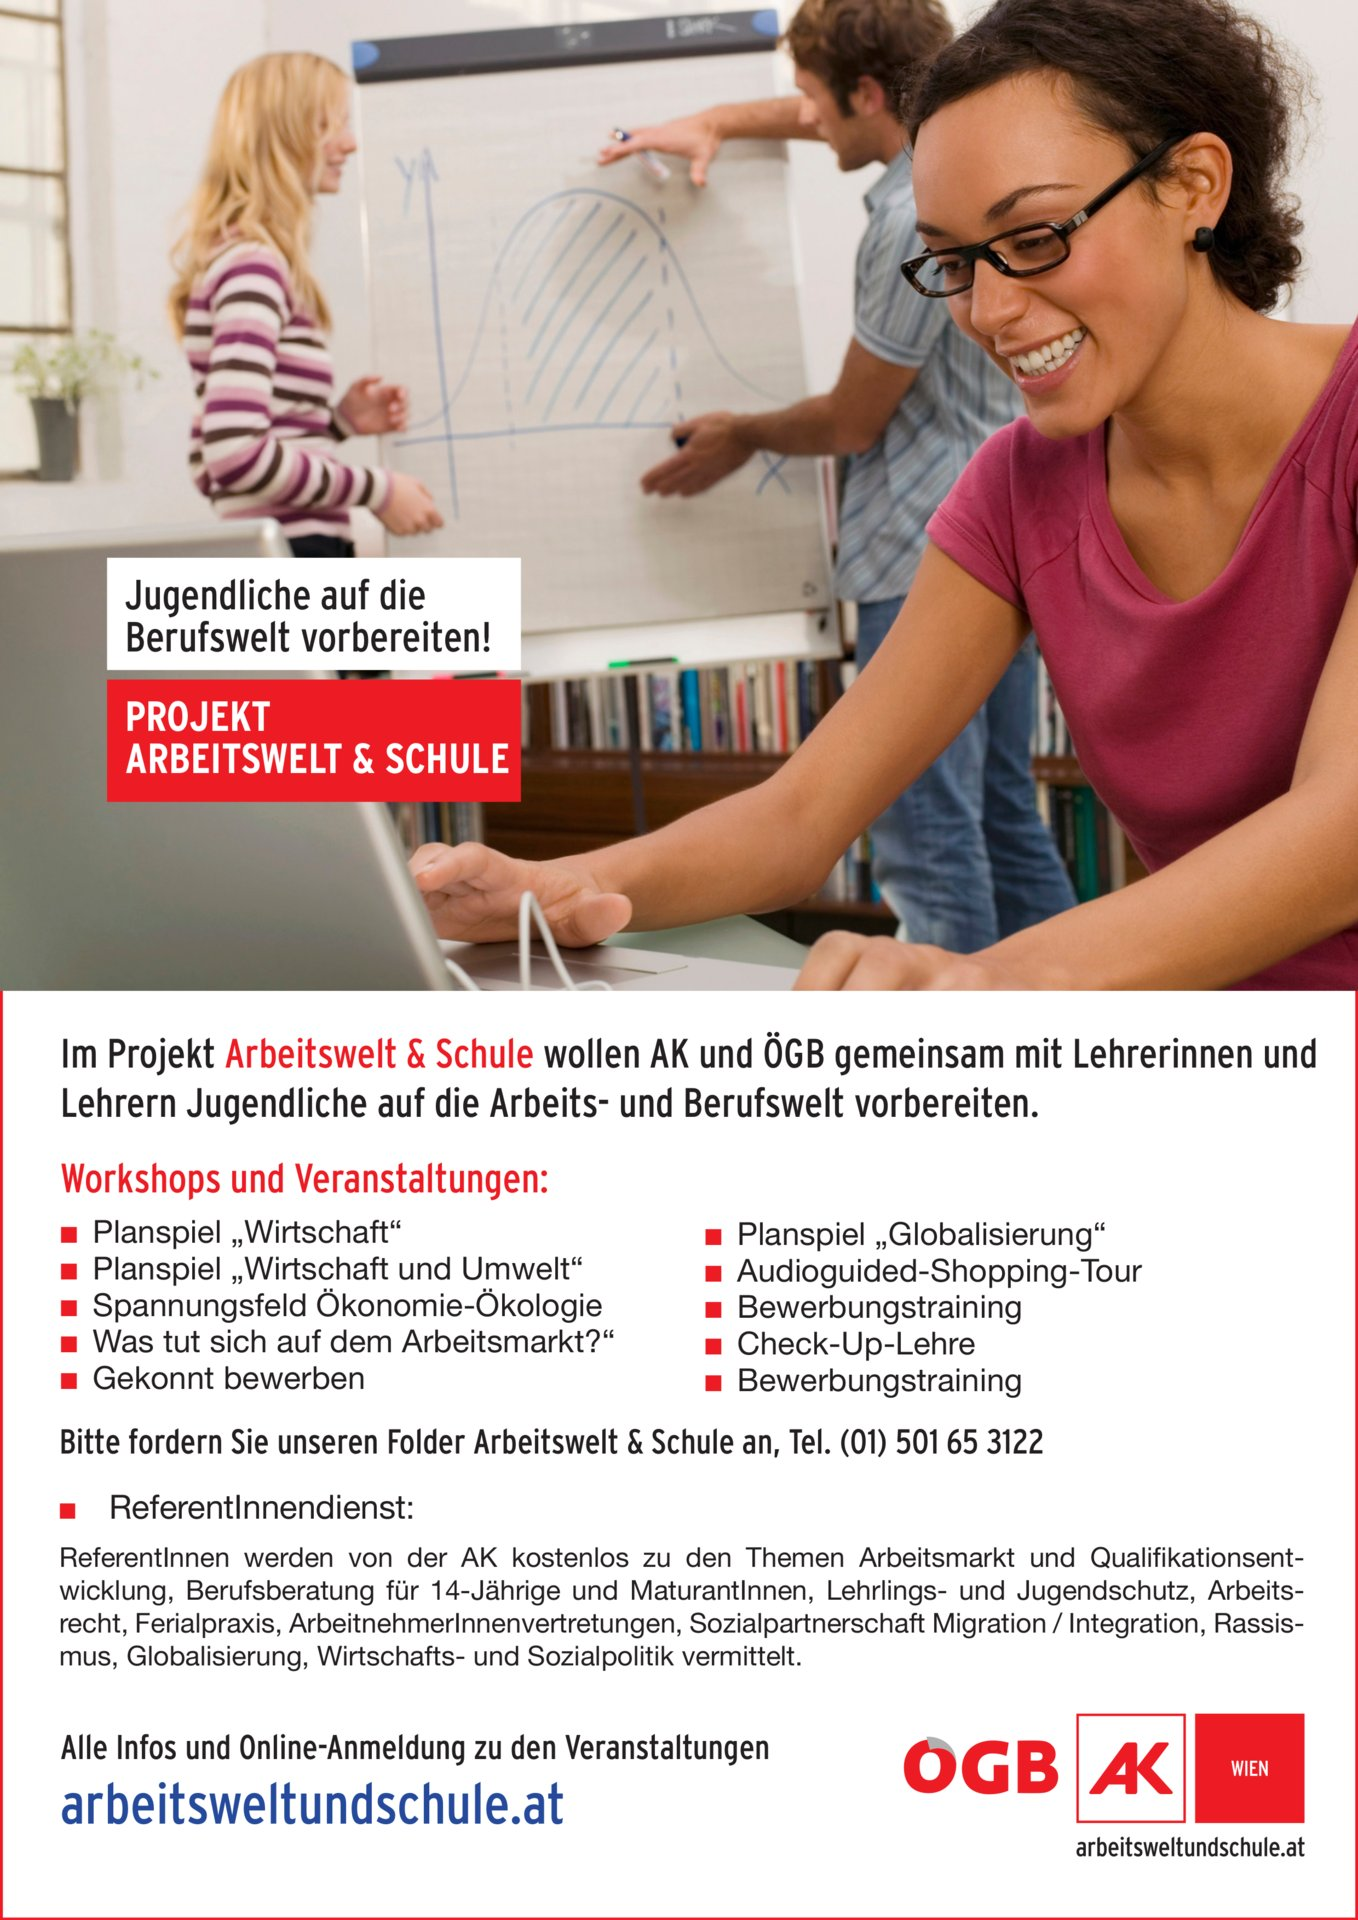 Arbeitsumweltschule